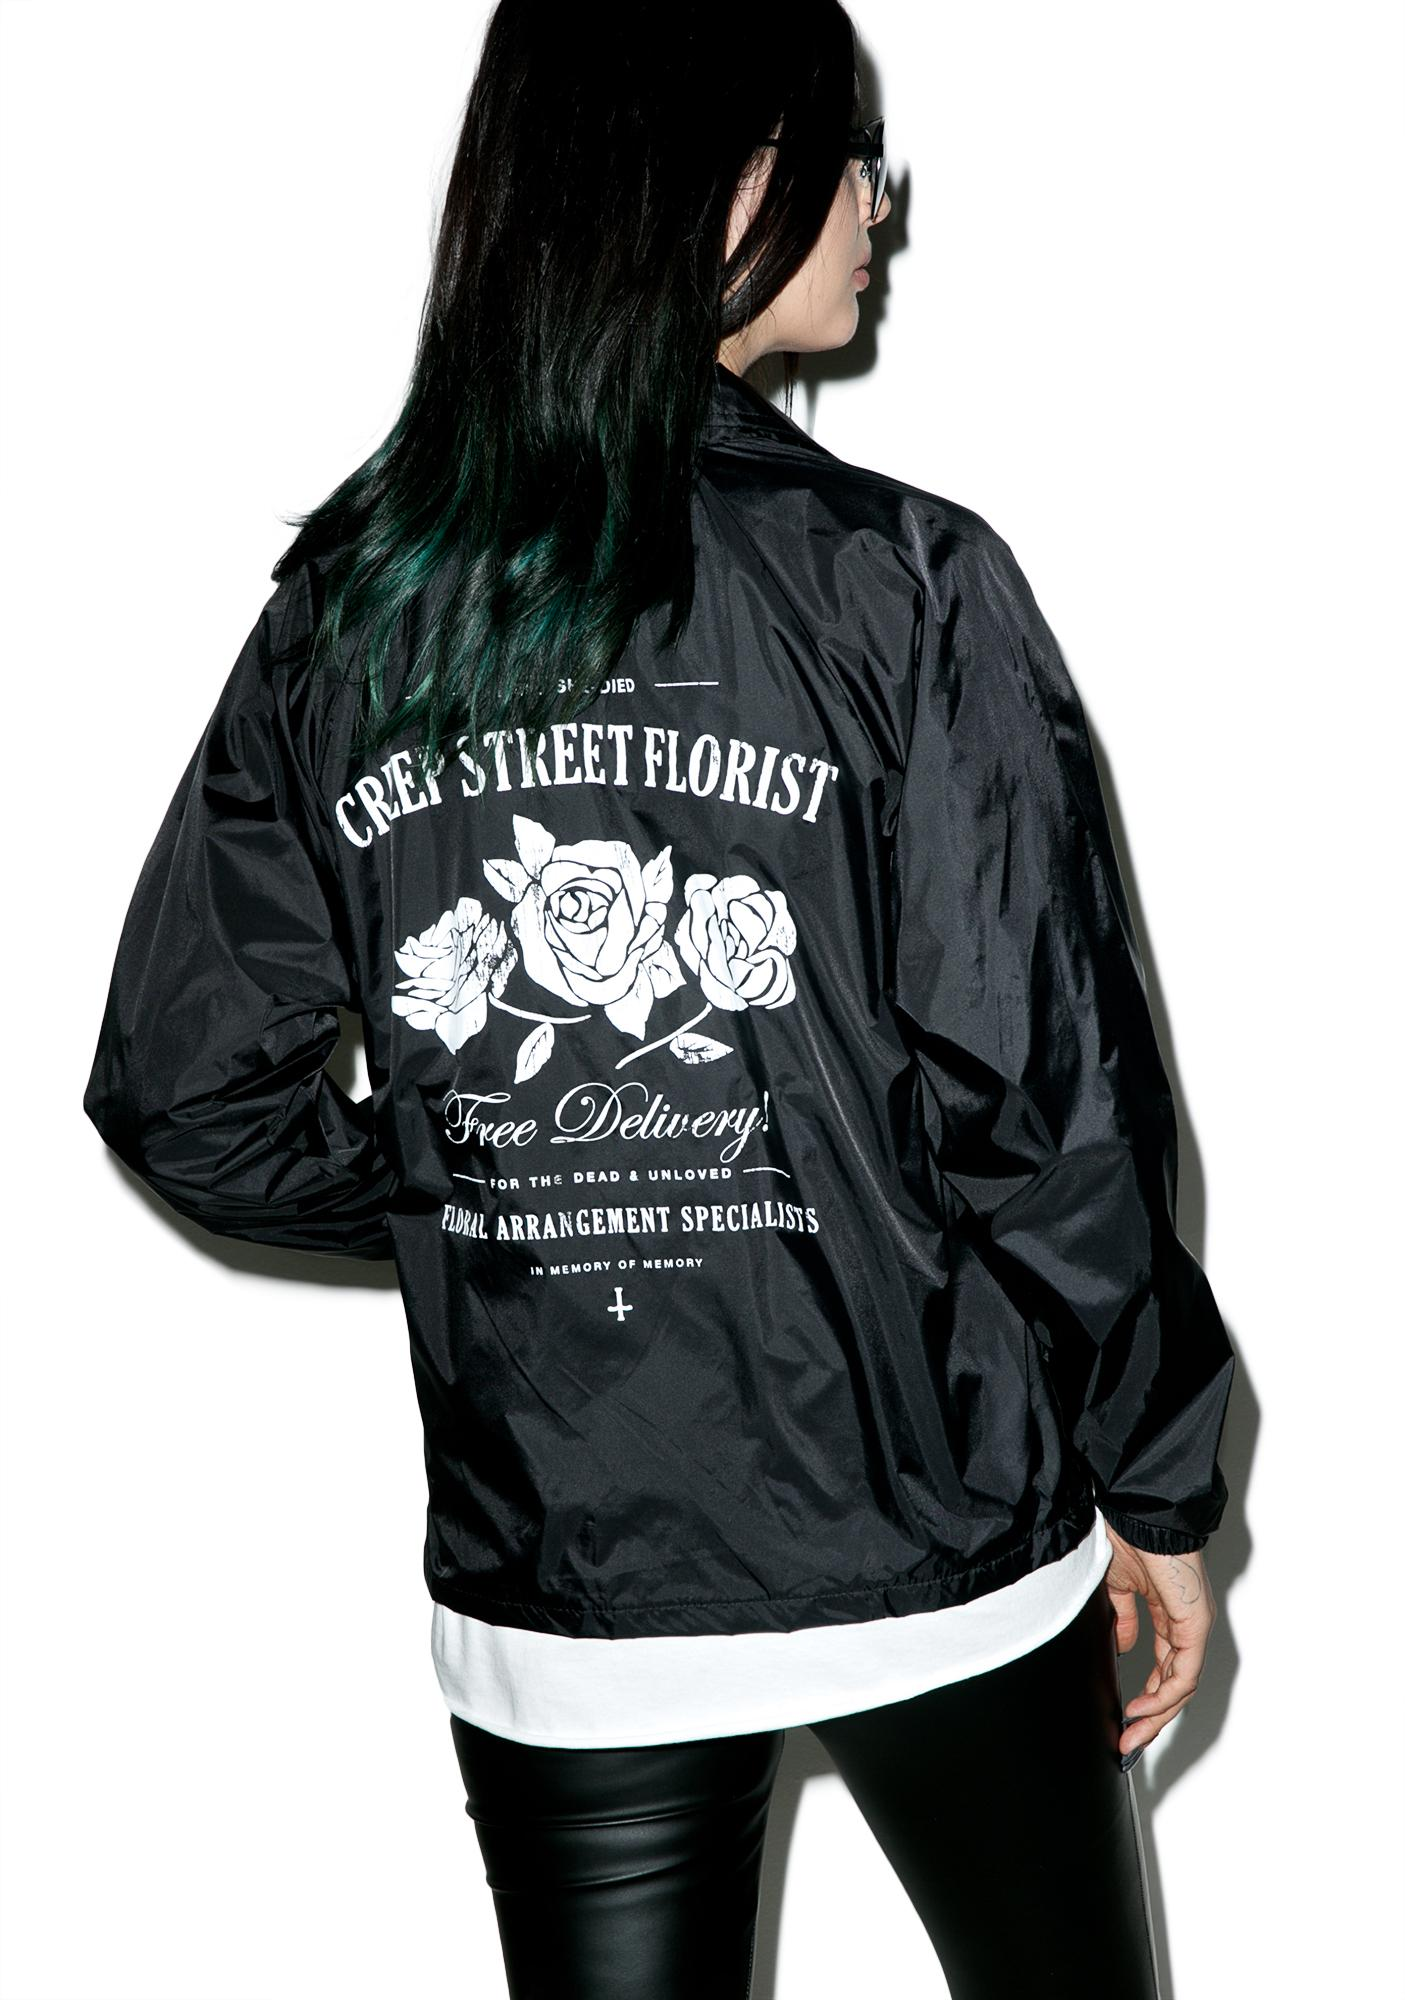 Creep Street Creepy Florist Coaches Jacket